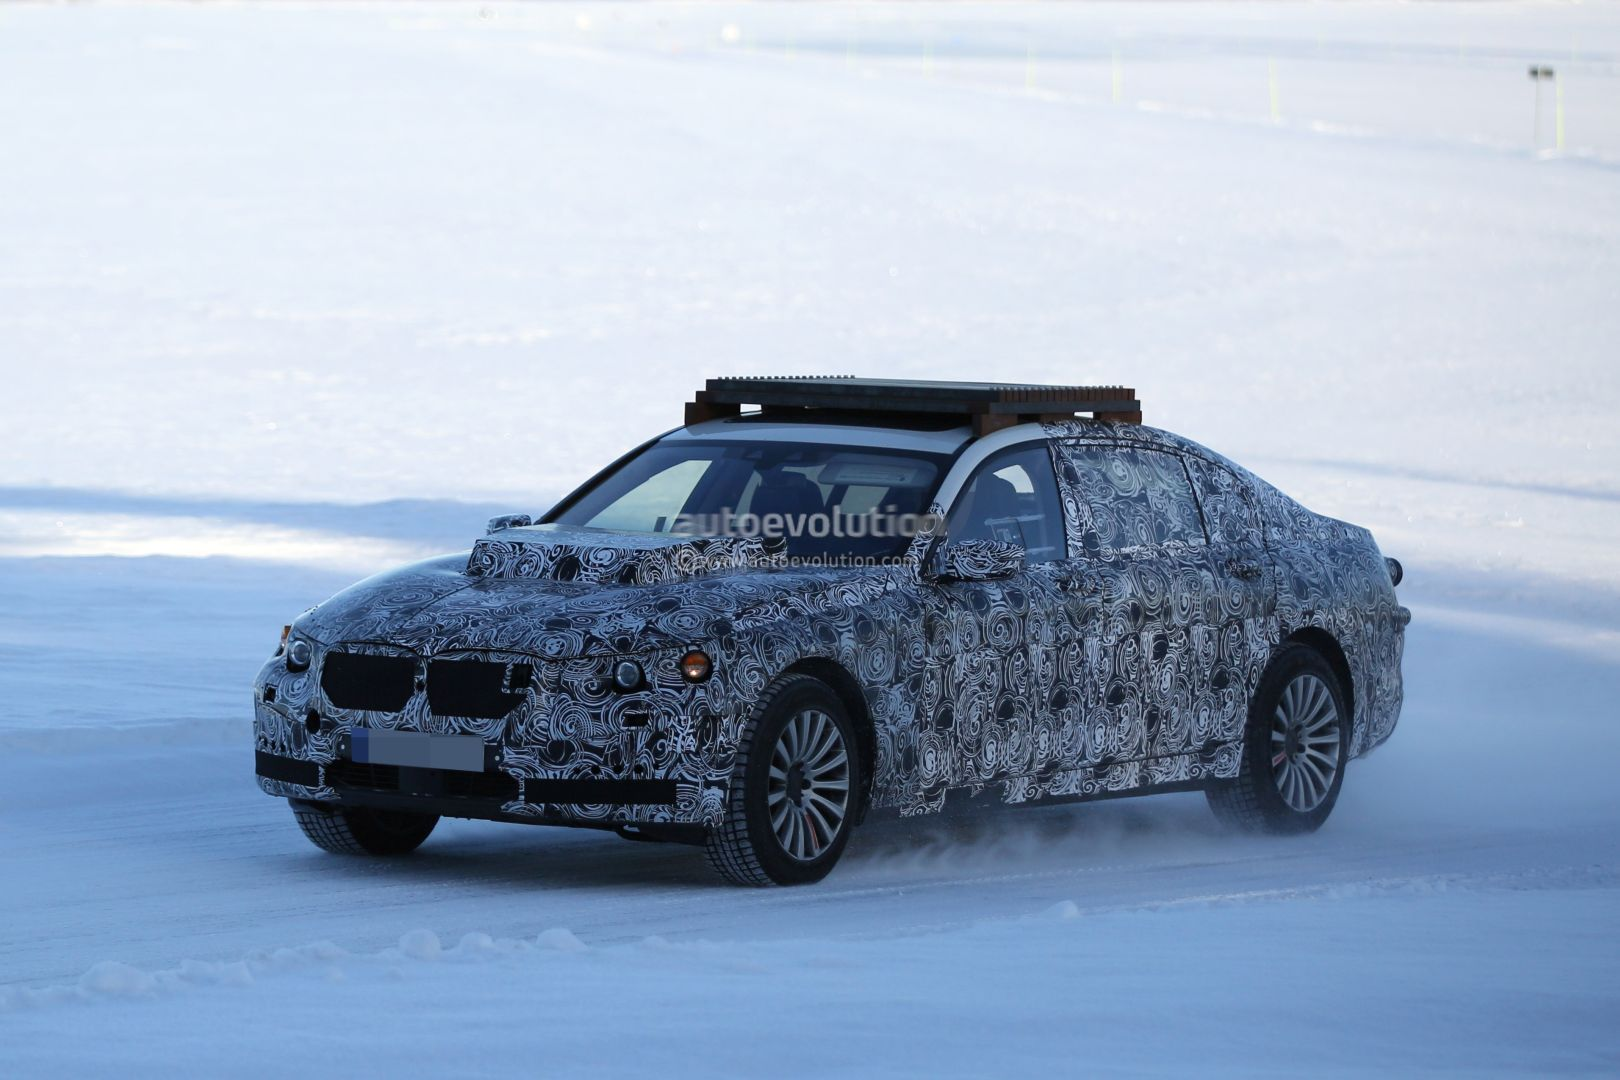 2017 Bmw X7 Mule Spotted Testing For The First Time